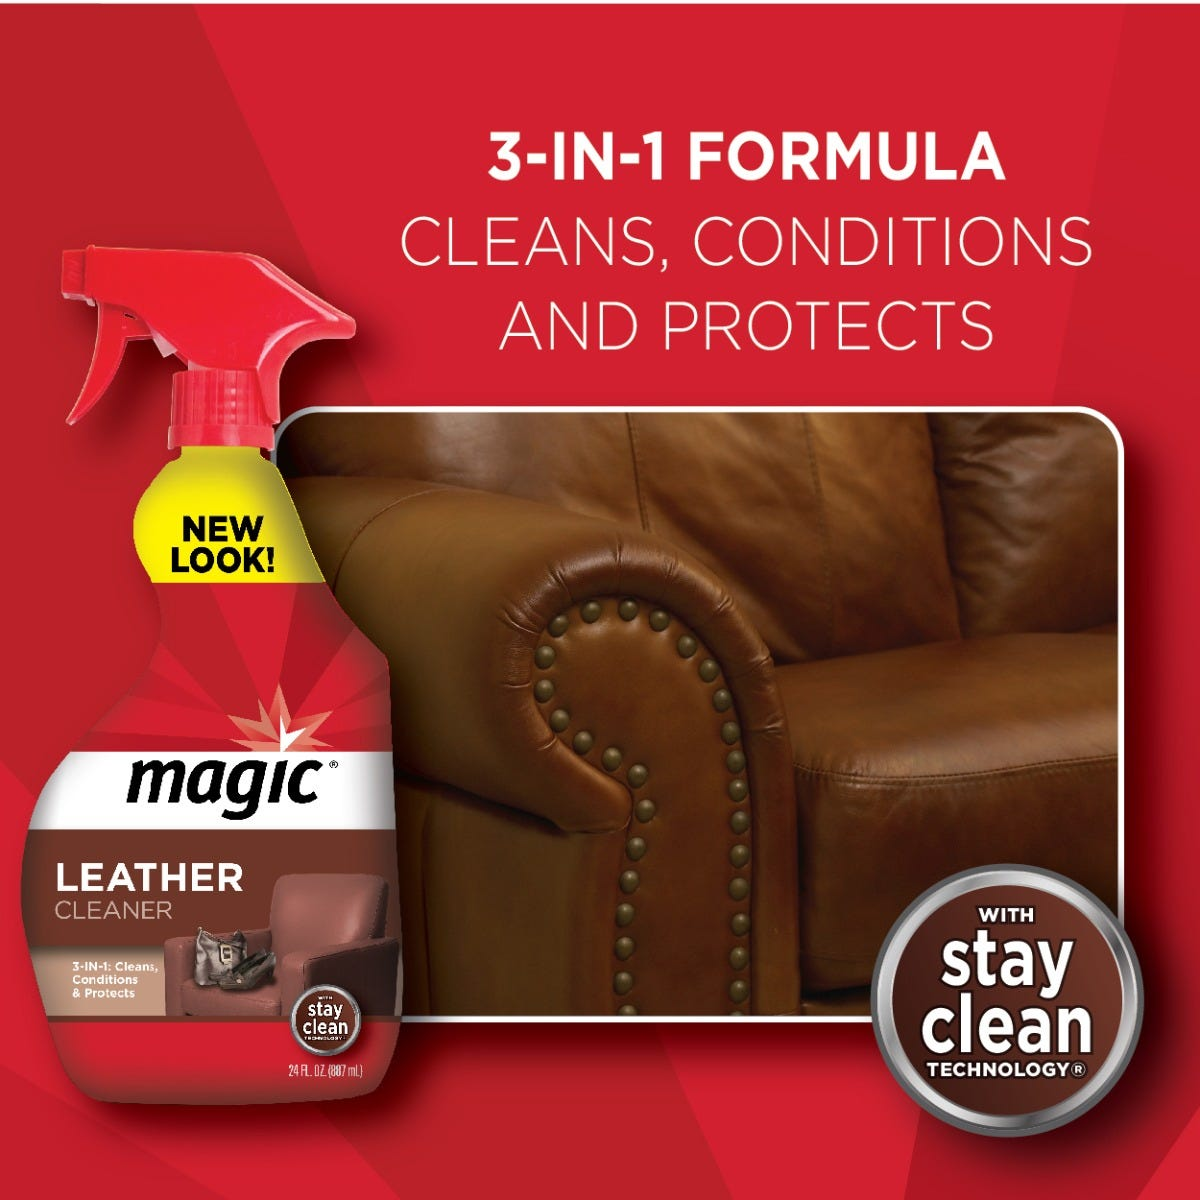 https://googone.com/media/catalog/product/m/a/magic_leather_cleaner_spray_beauty_2_2.jpg